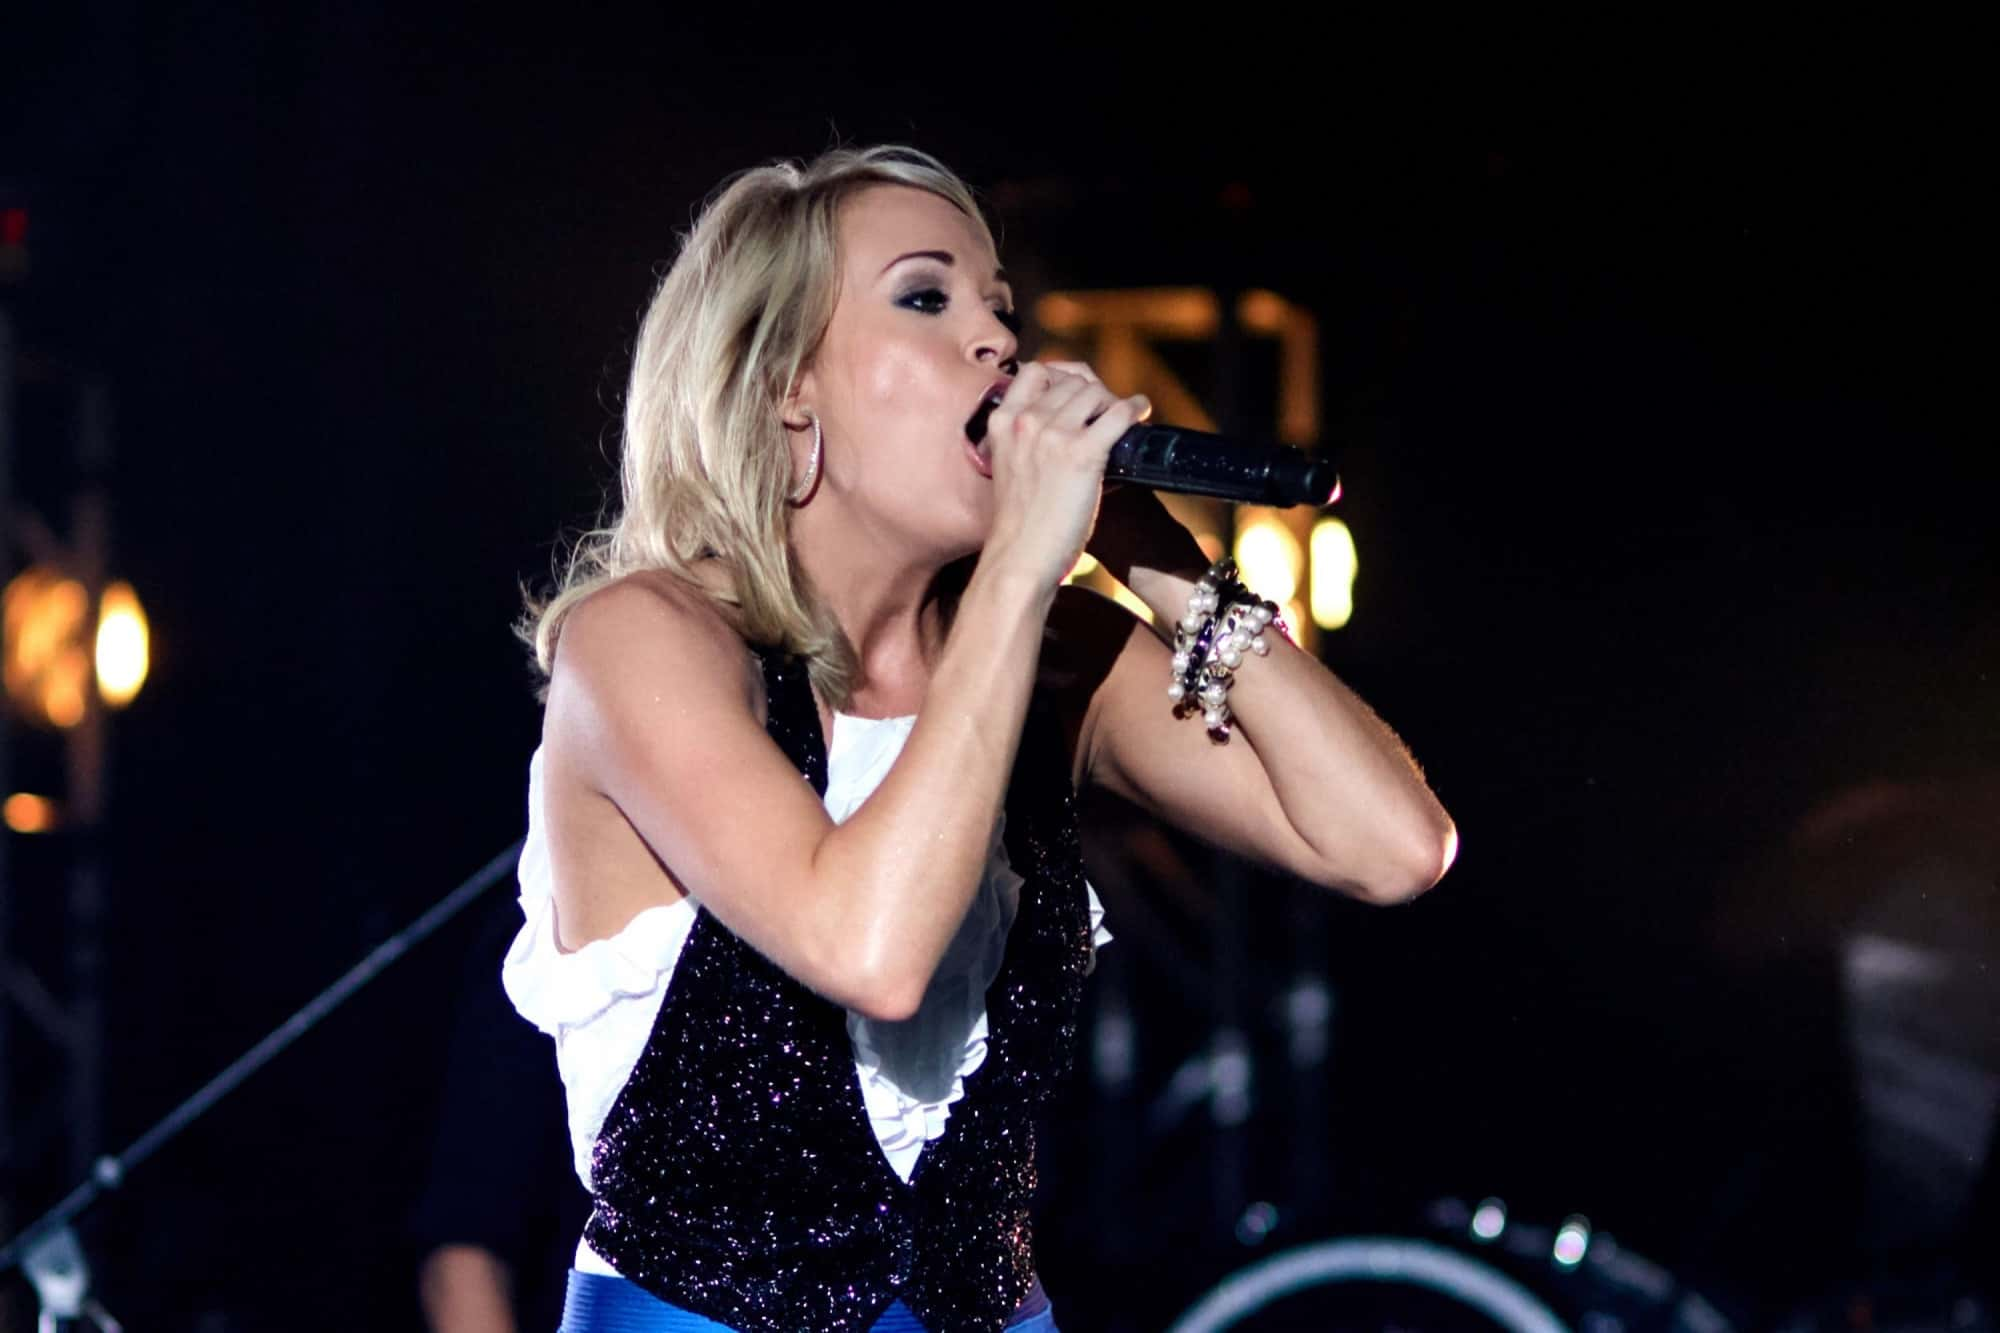 Carrie Underwood In Concert - Music Photographer